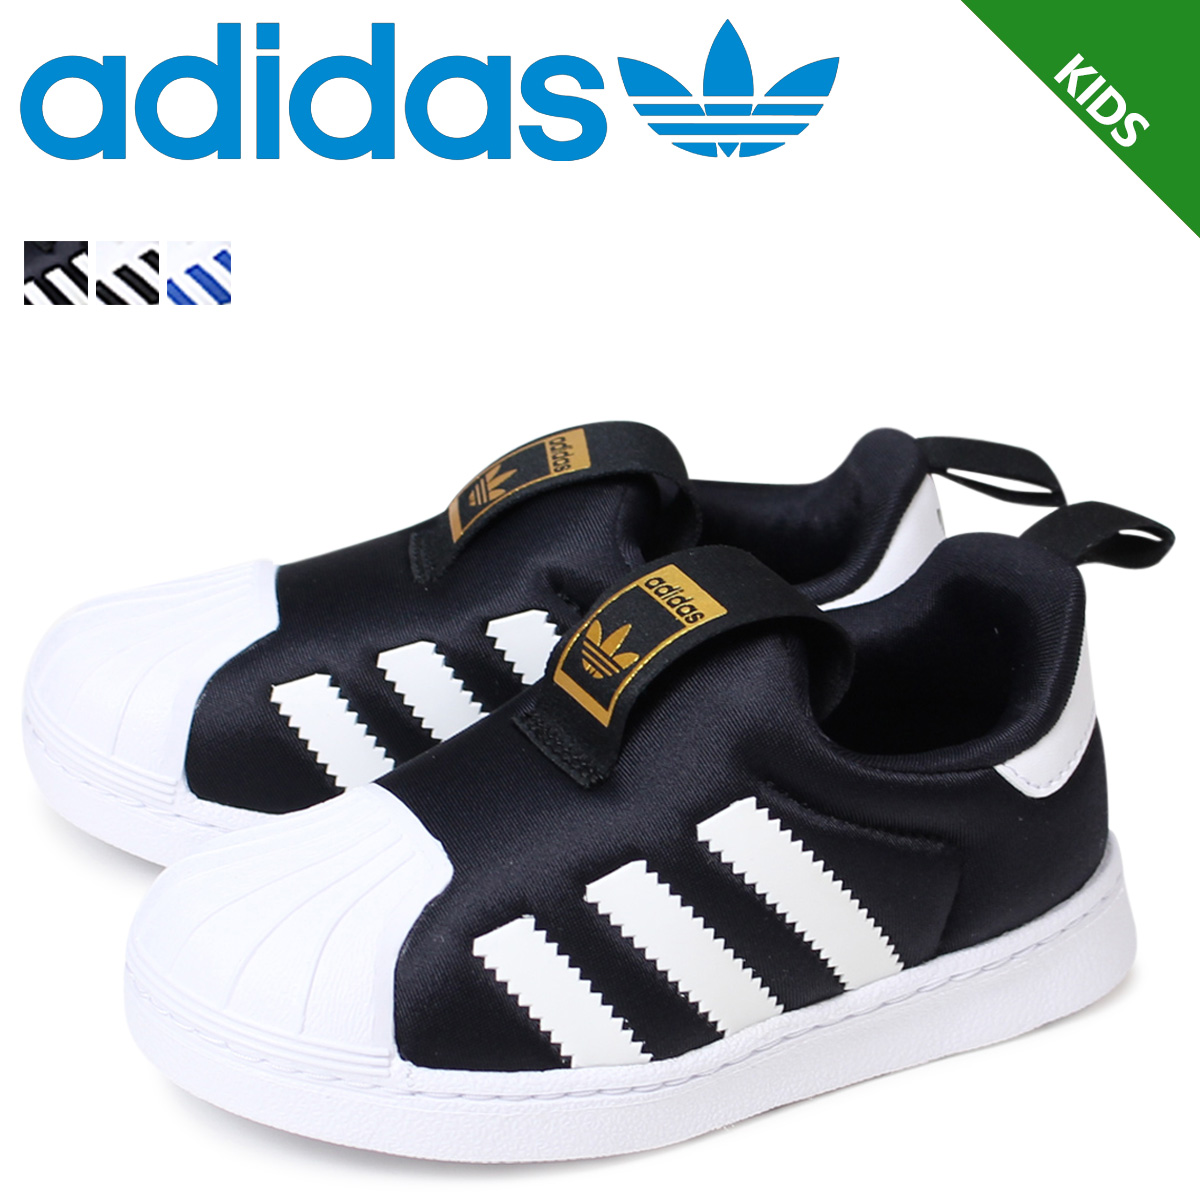 81c21b8ca7ec adidas shoes superstar high top adidas superstar 80s pink adidas ...